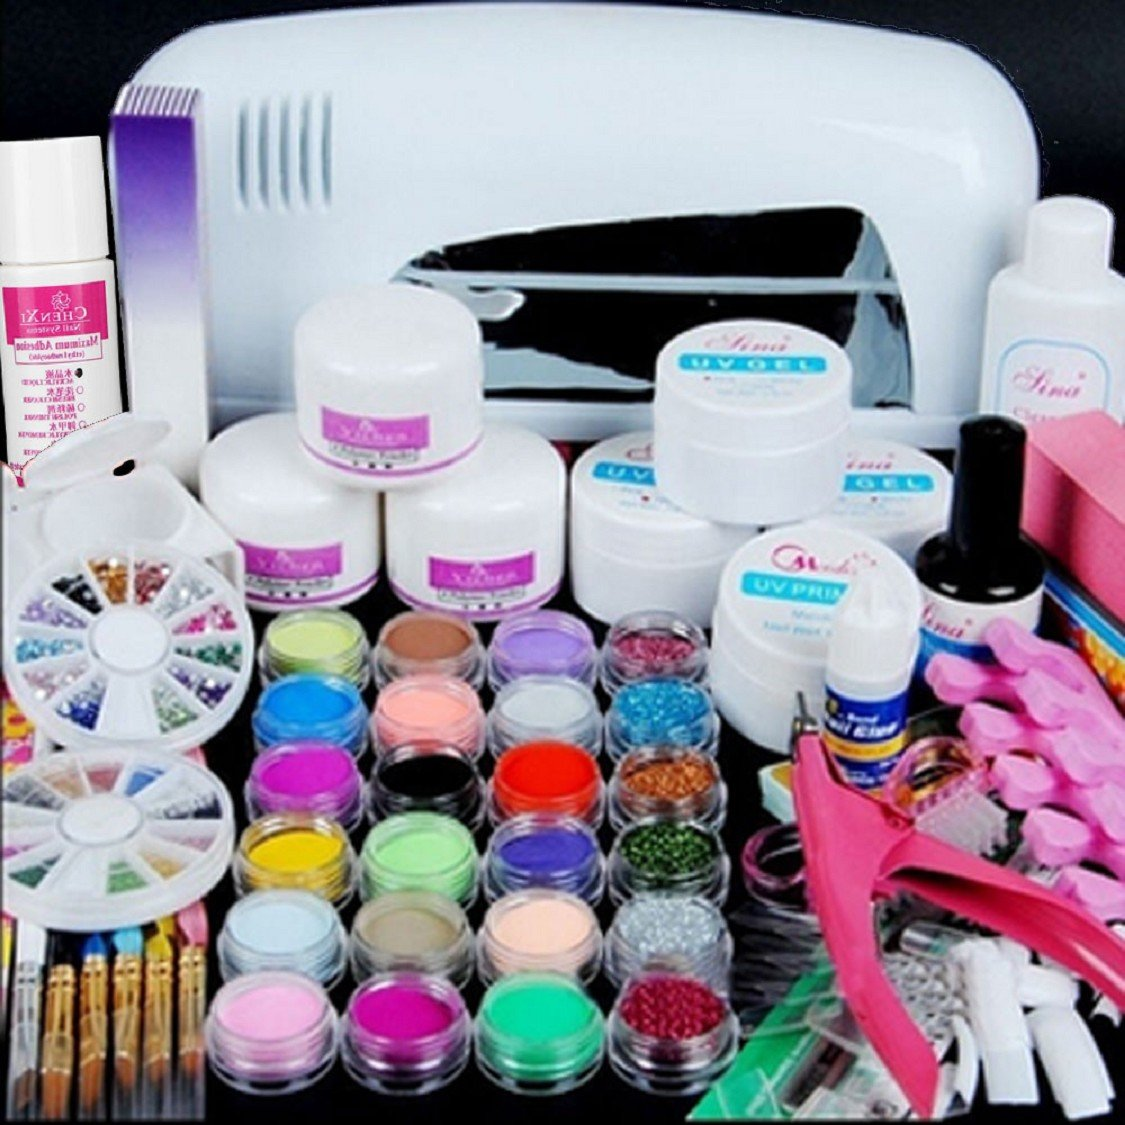 Ultimate Nail Art Tools Kit , Ikevan Hot Pro Full 9W UV White Cure Lamp Nail Art Dryer + 24 Color Acrylic Powder Gel Nail Art Tools Set Kit